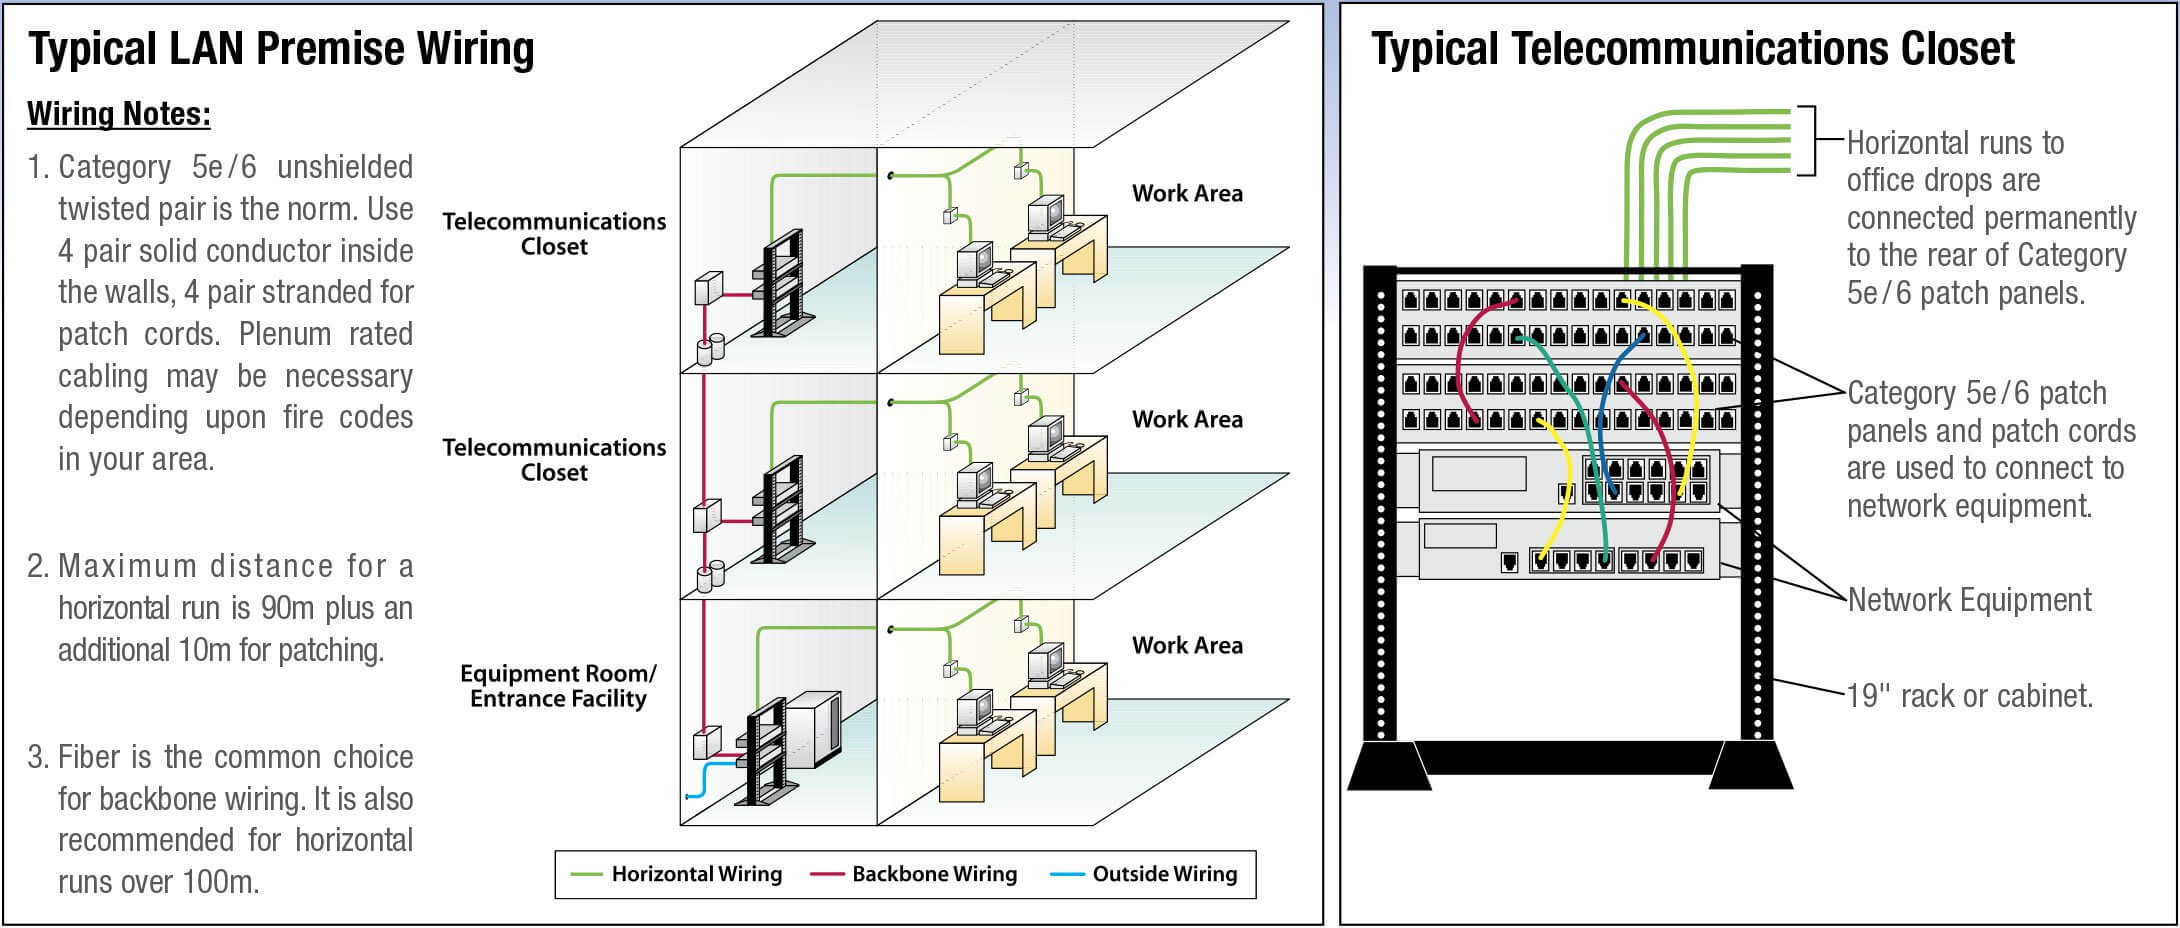 Connectors Rj45 Modular Wiring Diagram Library Typical Lan Premise And Telecommunications Closet